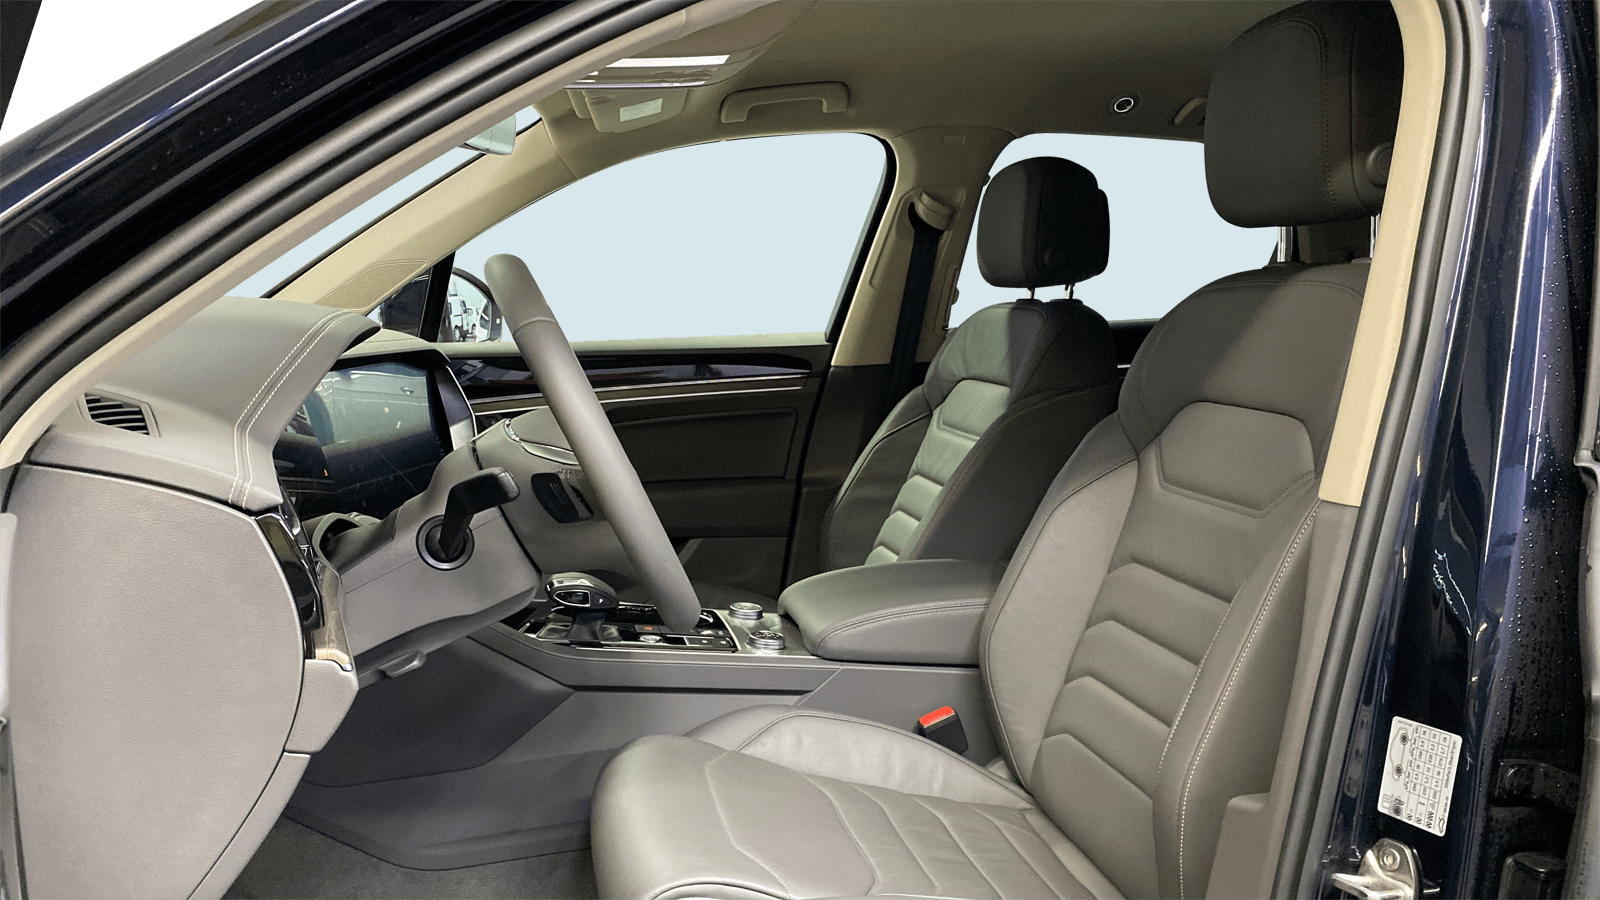 VW Touareg Blue interior - Clyde car subscription